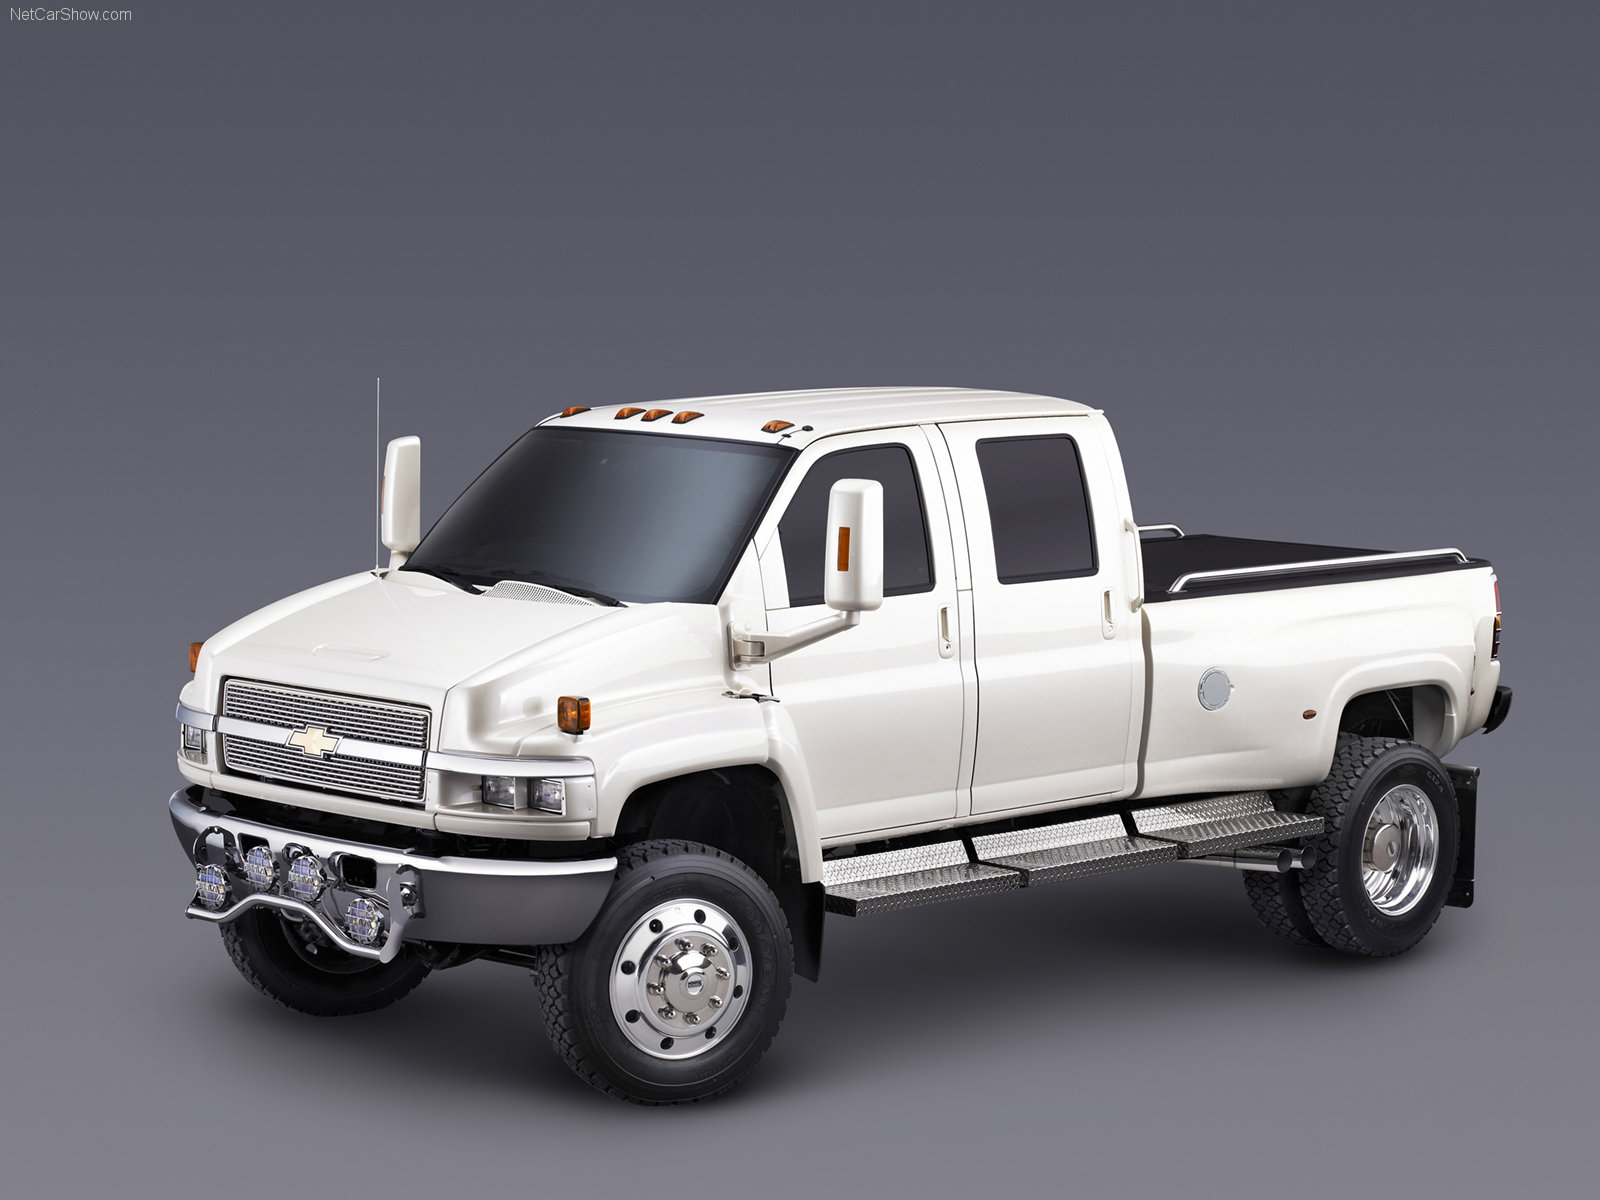 Chevrolet Kodiak C4500 2006 wallpaper | 1600x1200 | 215632